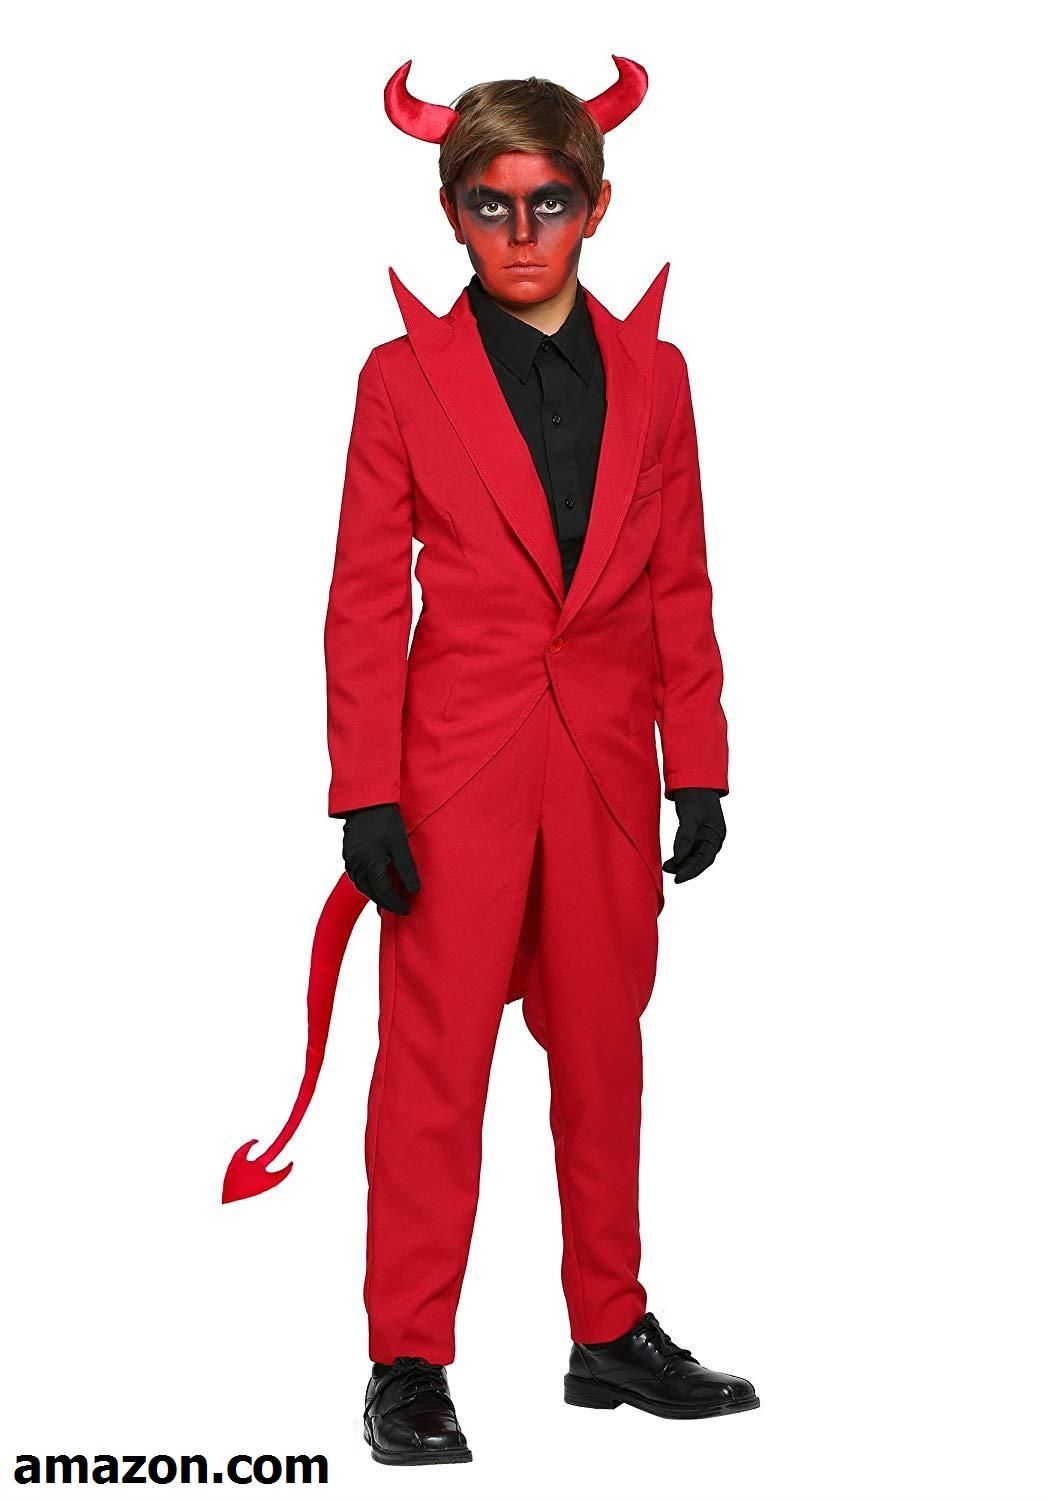 Child Red Suit Devil Costume GIRL S HALLOWEEN COSTUMES